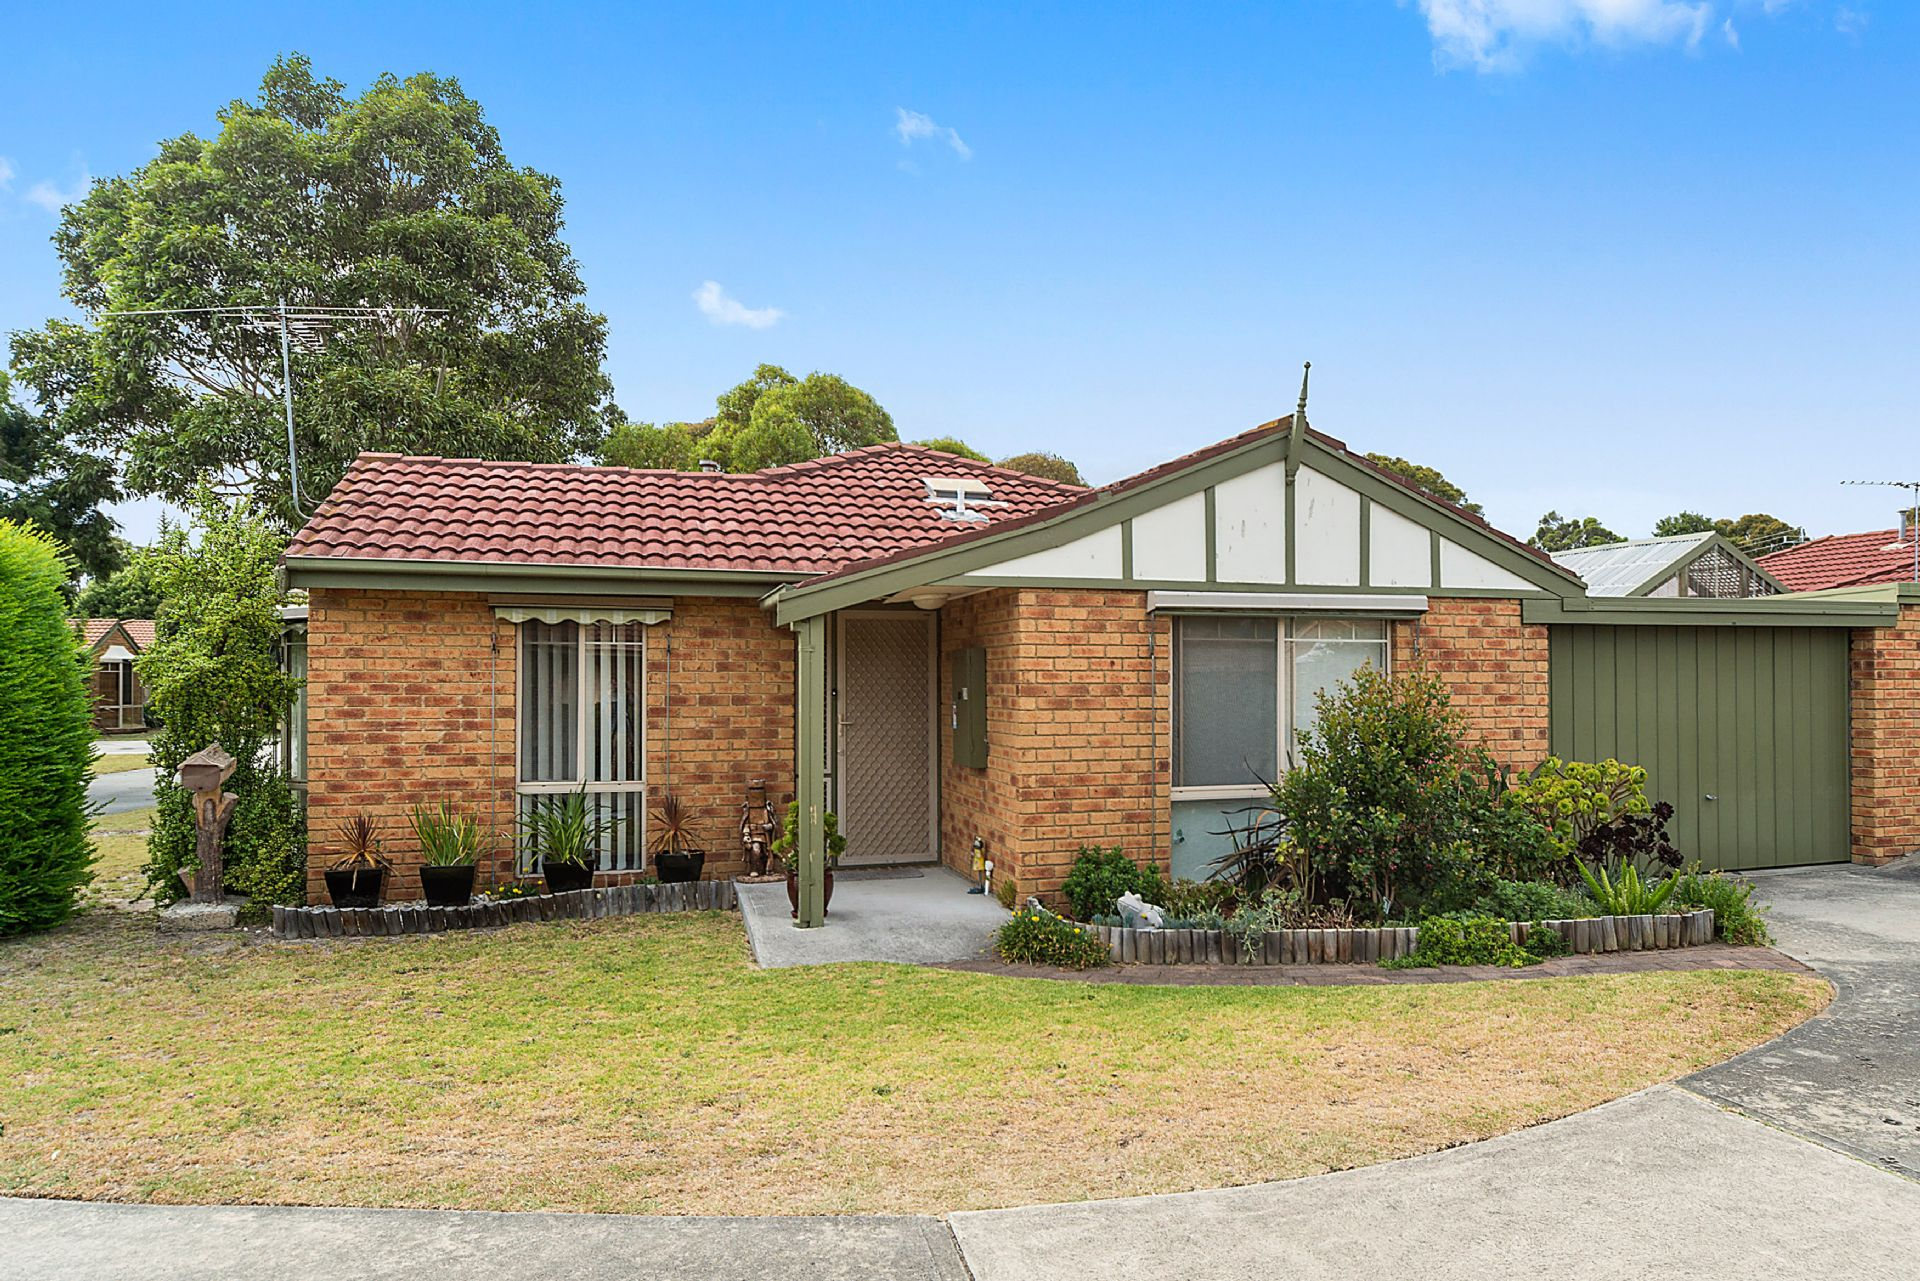 16/1 Young Street, SEAFORD, VIC, 3198 - Image